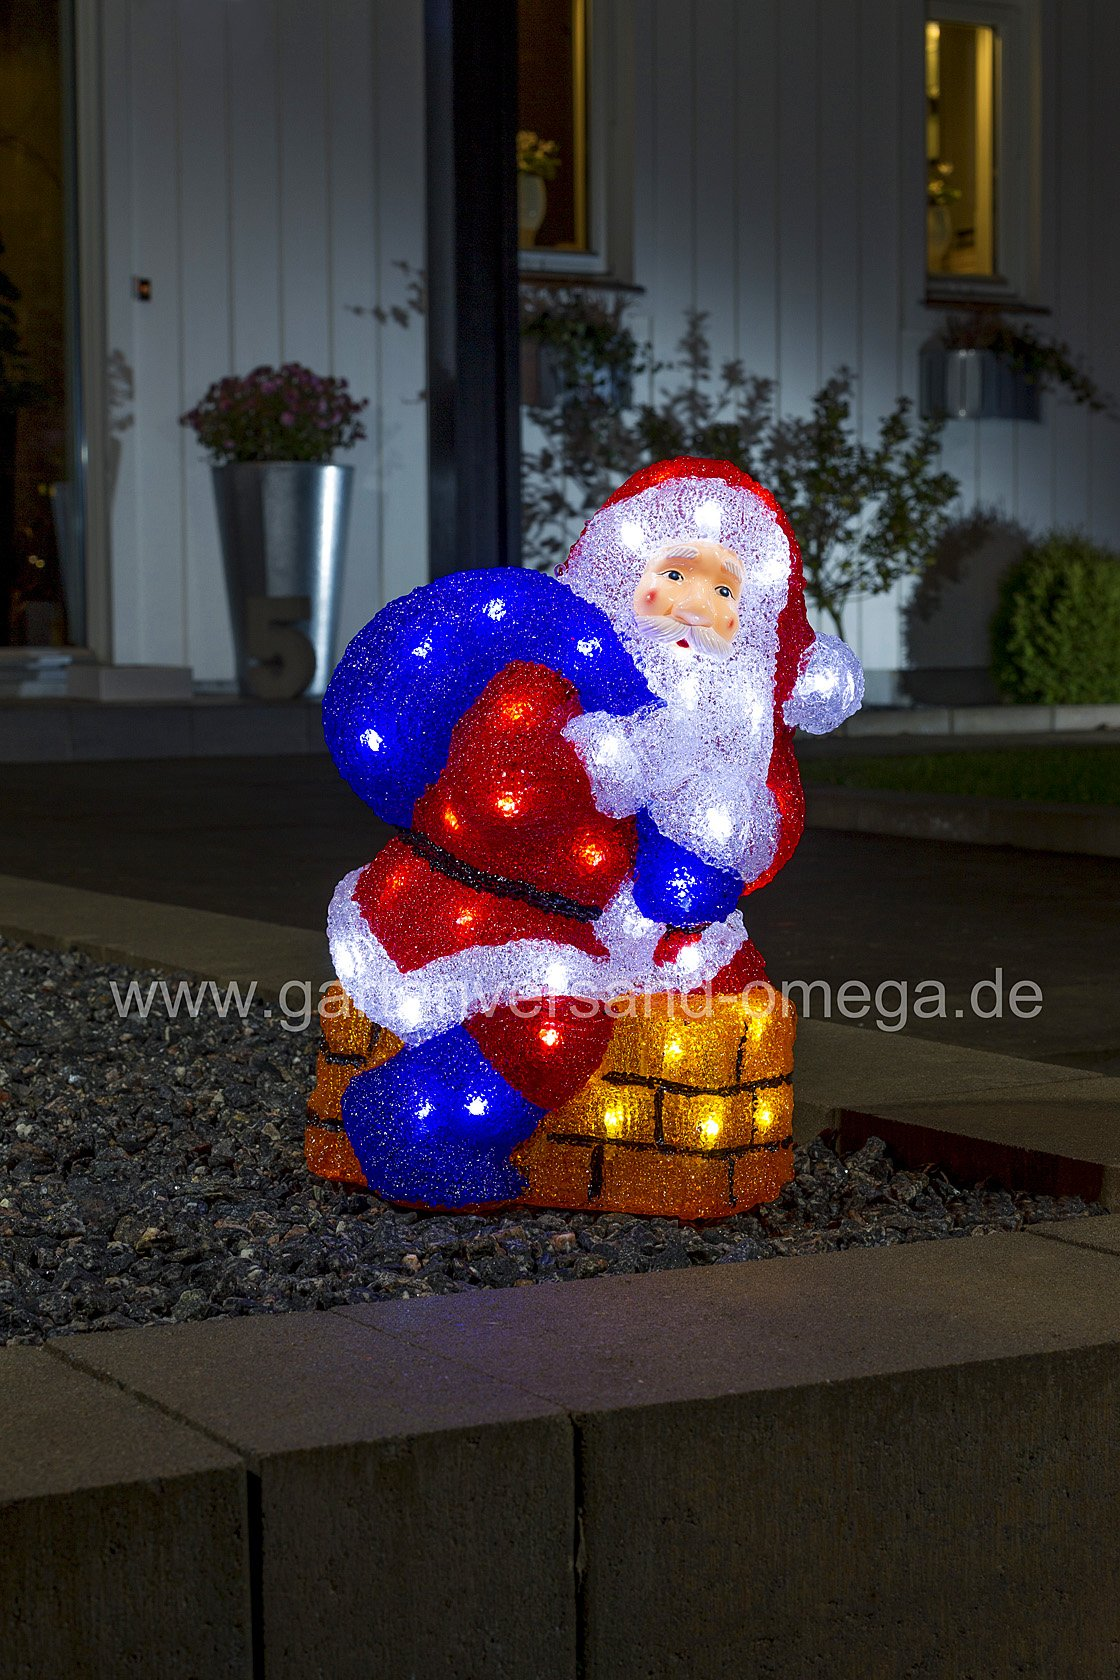 led acrylfigur weihnachtsmann mit schornstein acryl weihnachtsmann 3d figuren weihnachten. Black Bedroom Furniture Sets. Home Design Ideas